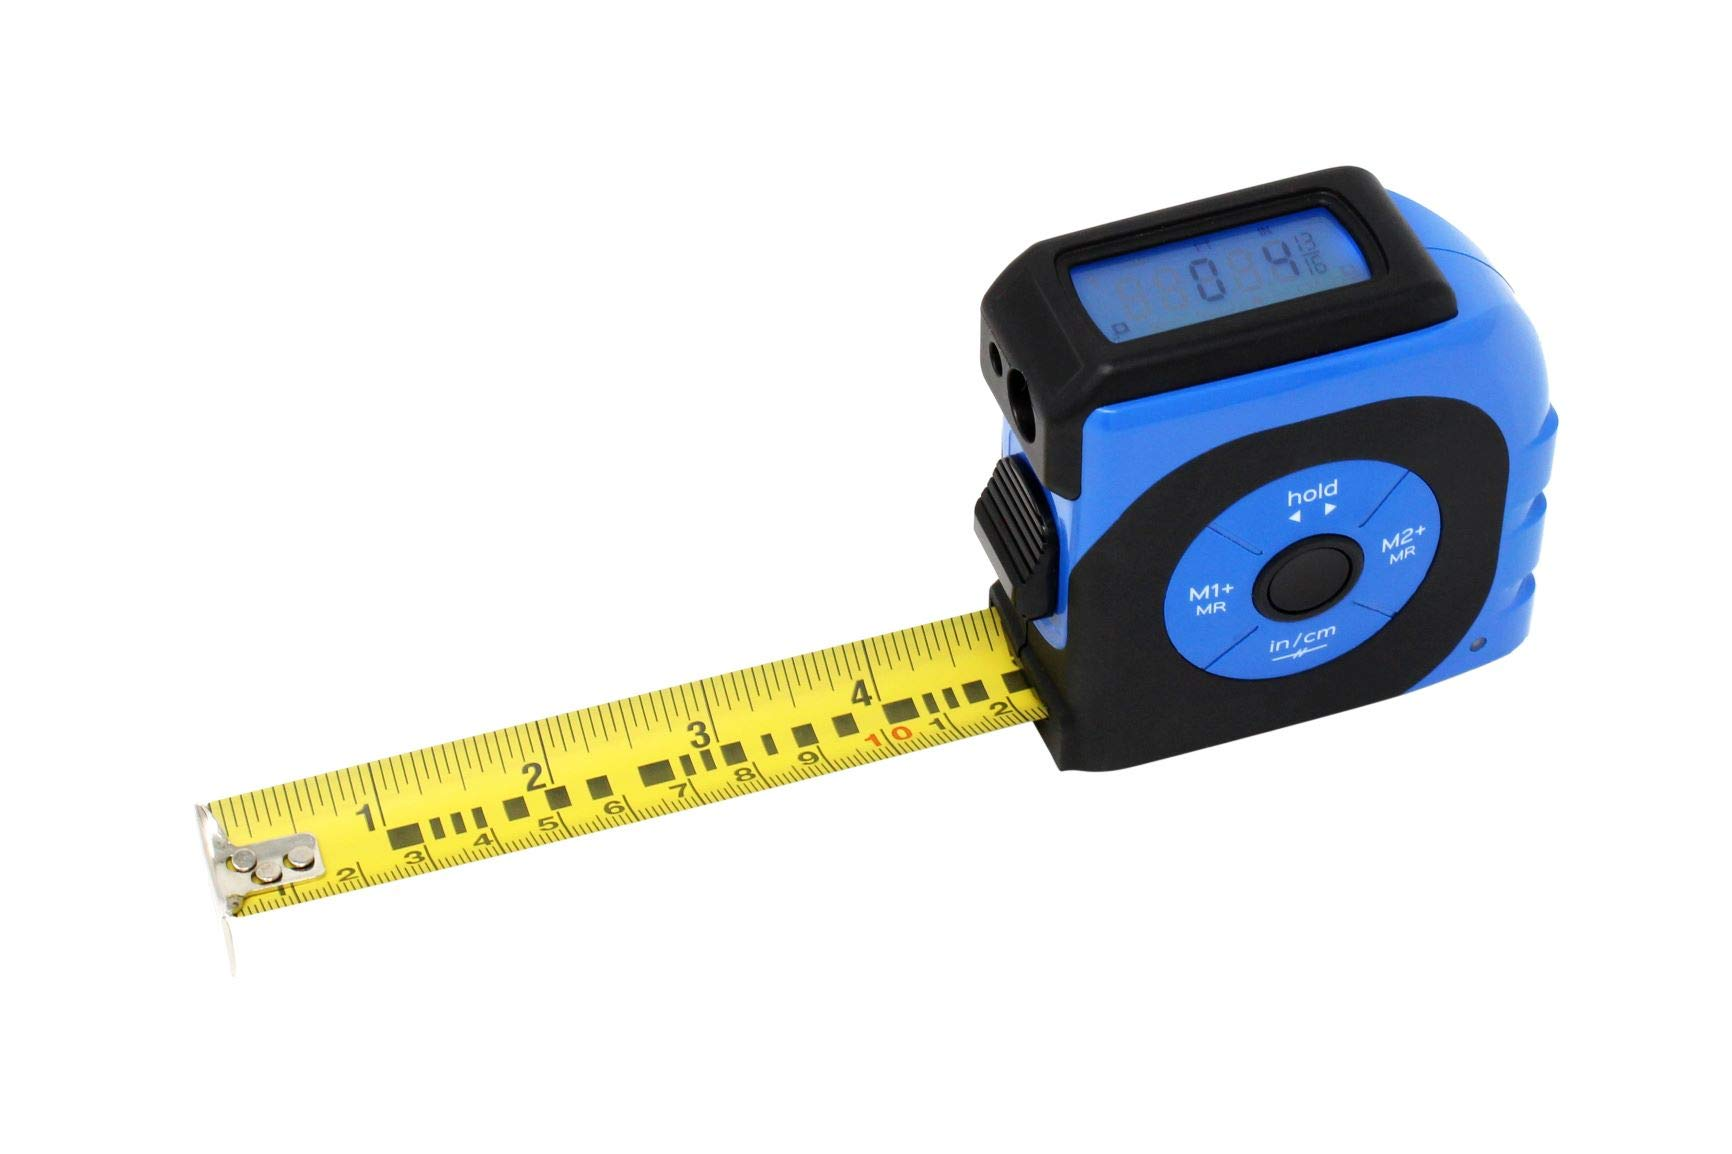 K Laser Tape Measure with backlit digital screen, a combination of a laser measure and a tape measure 165ft